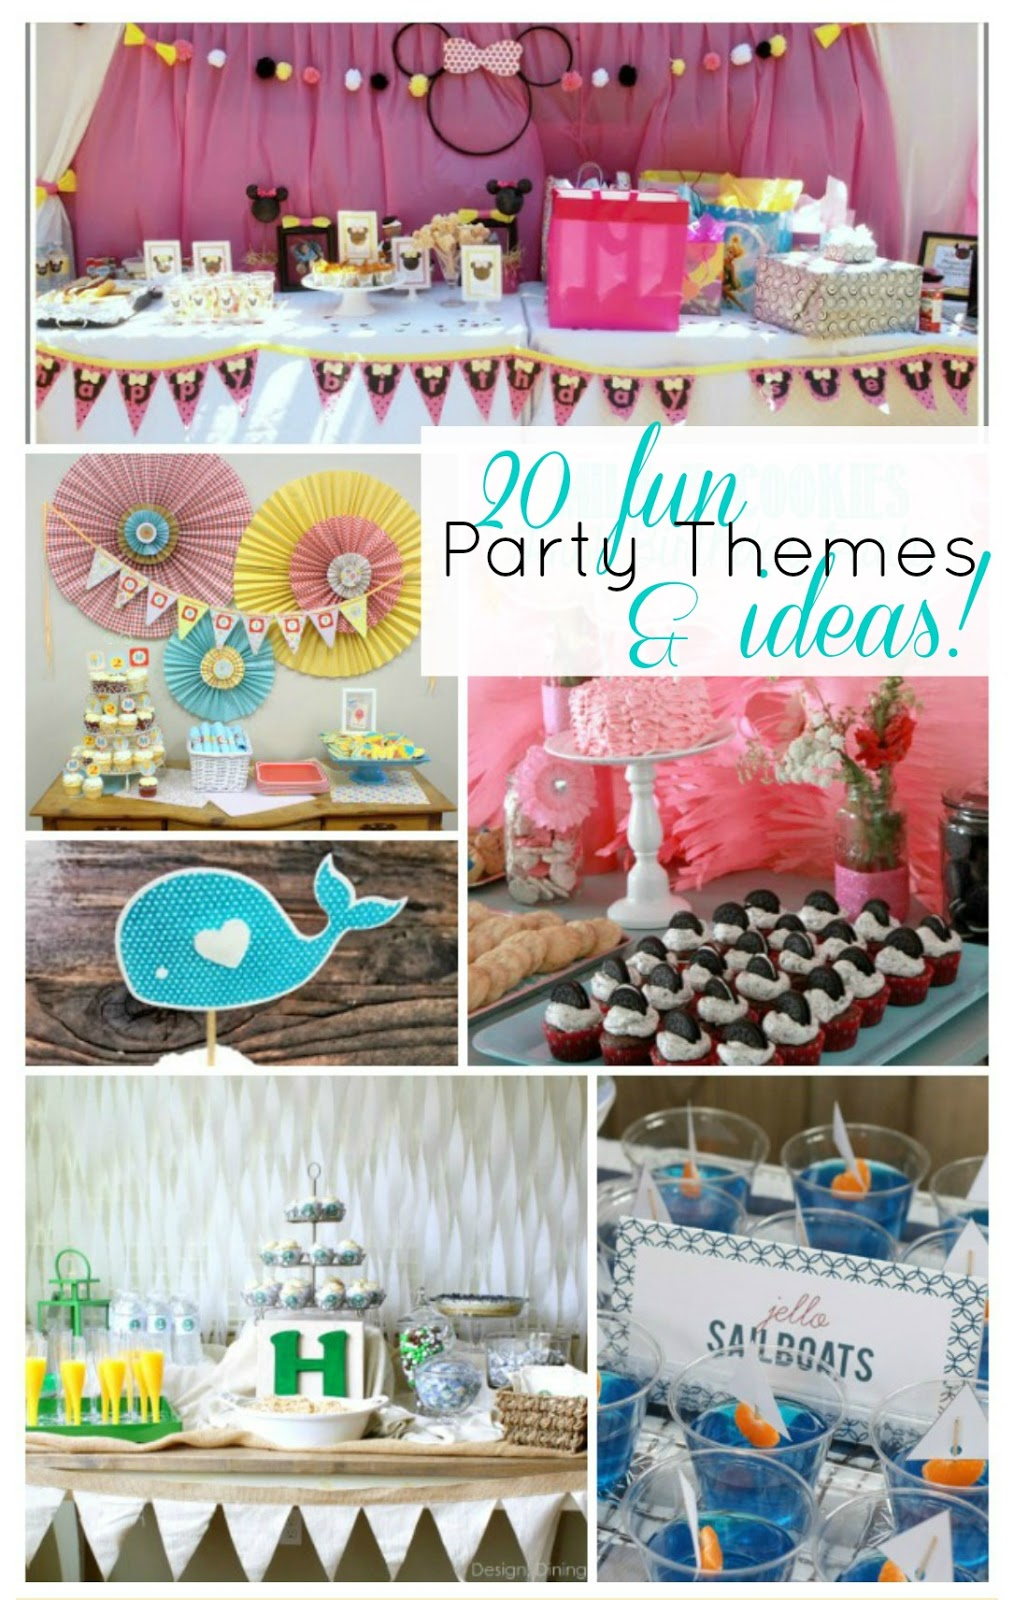 52 Mantels: 20 Party Ideas & Themes!